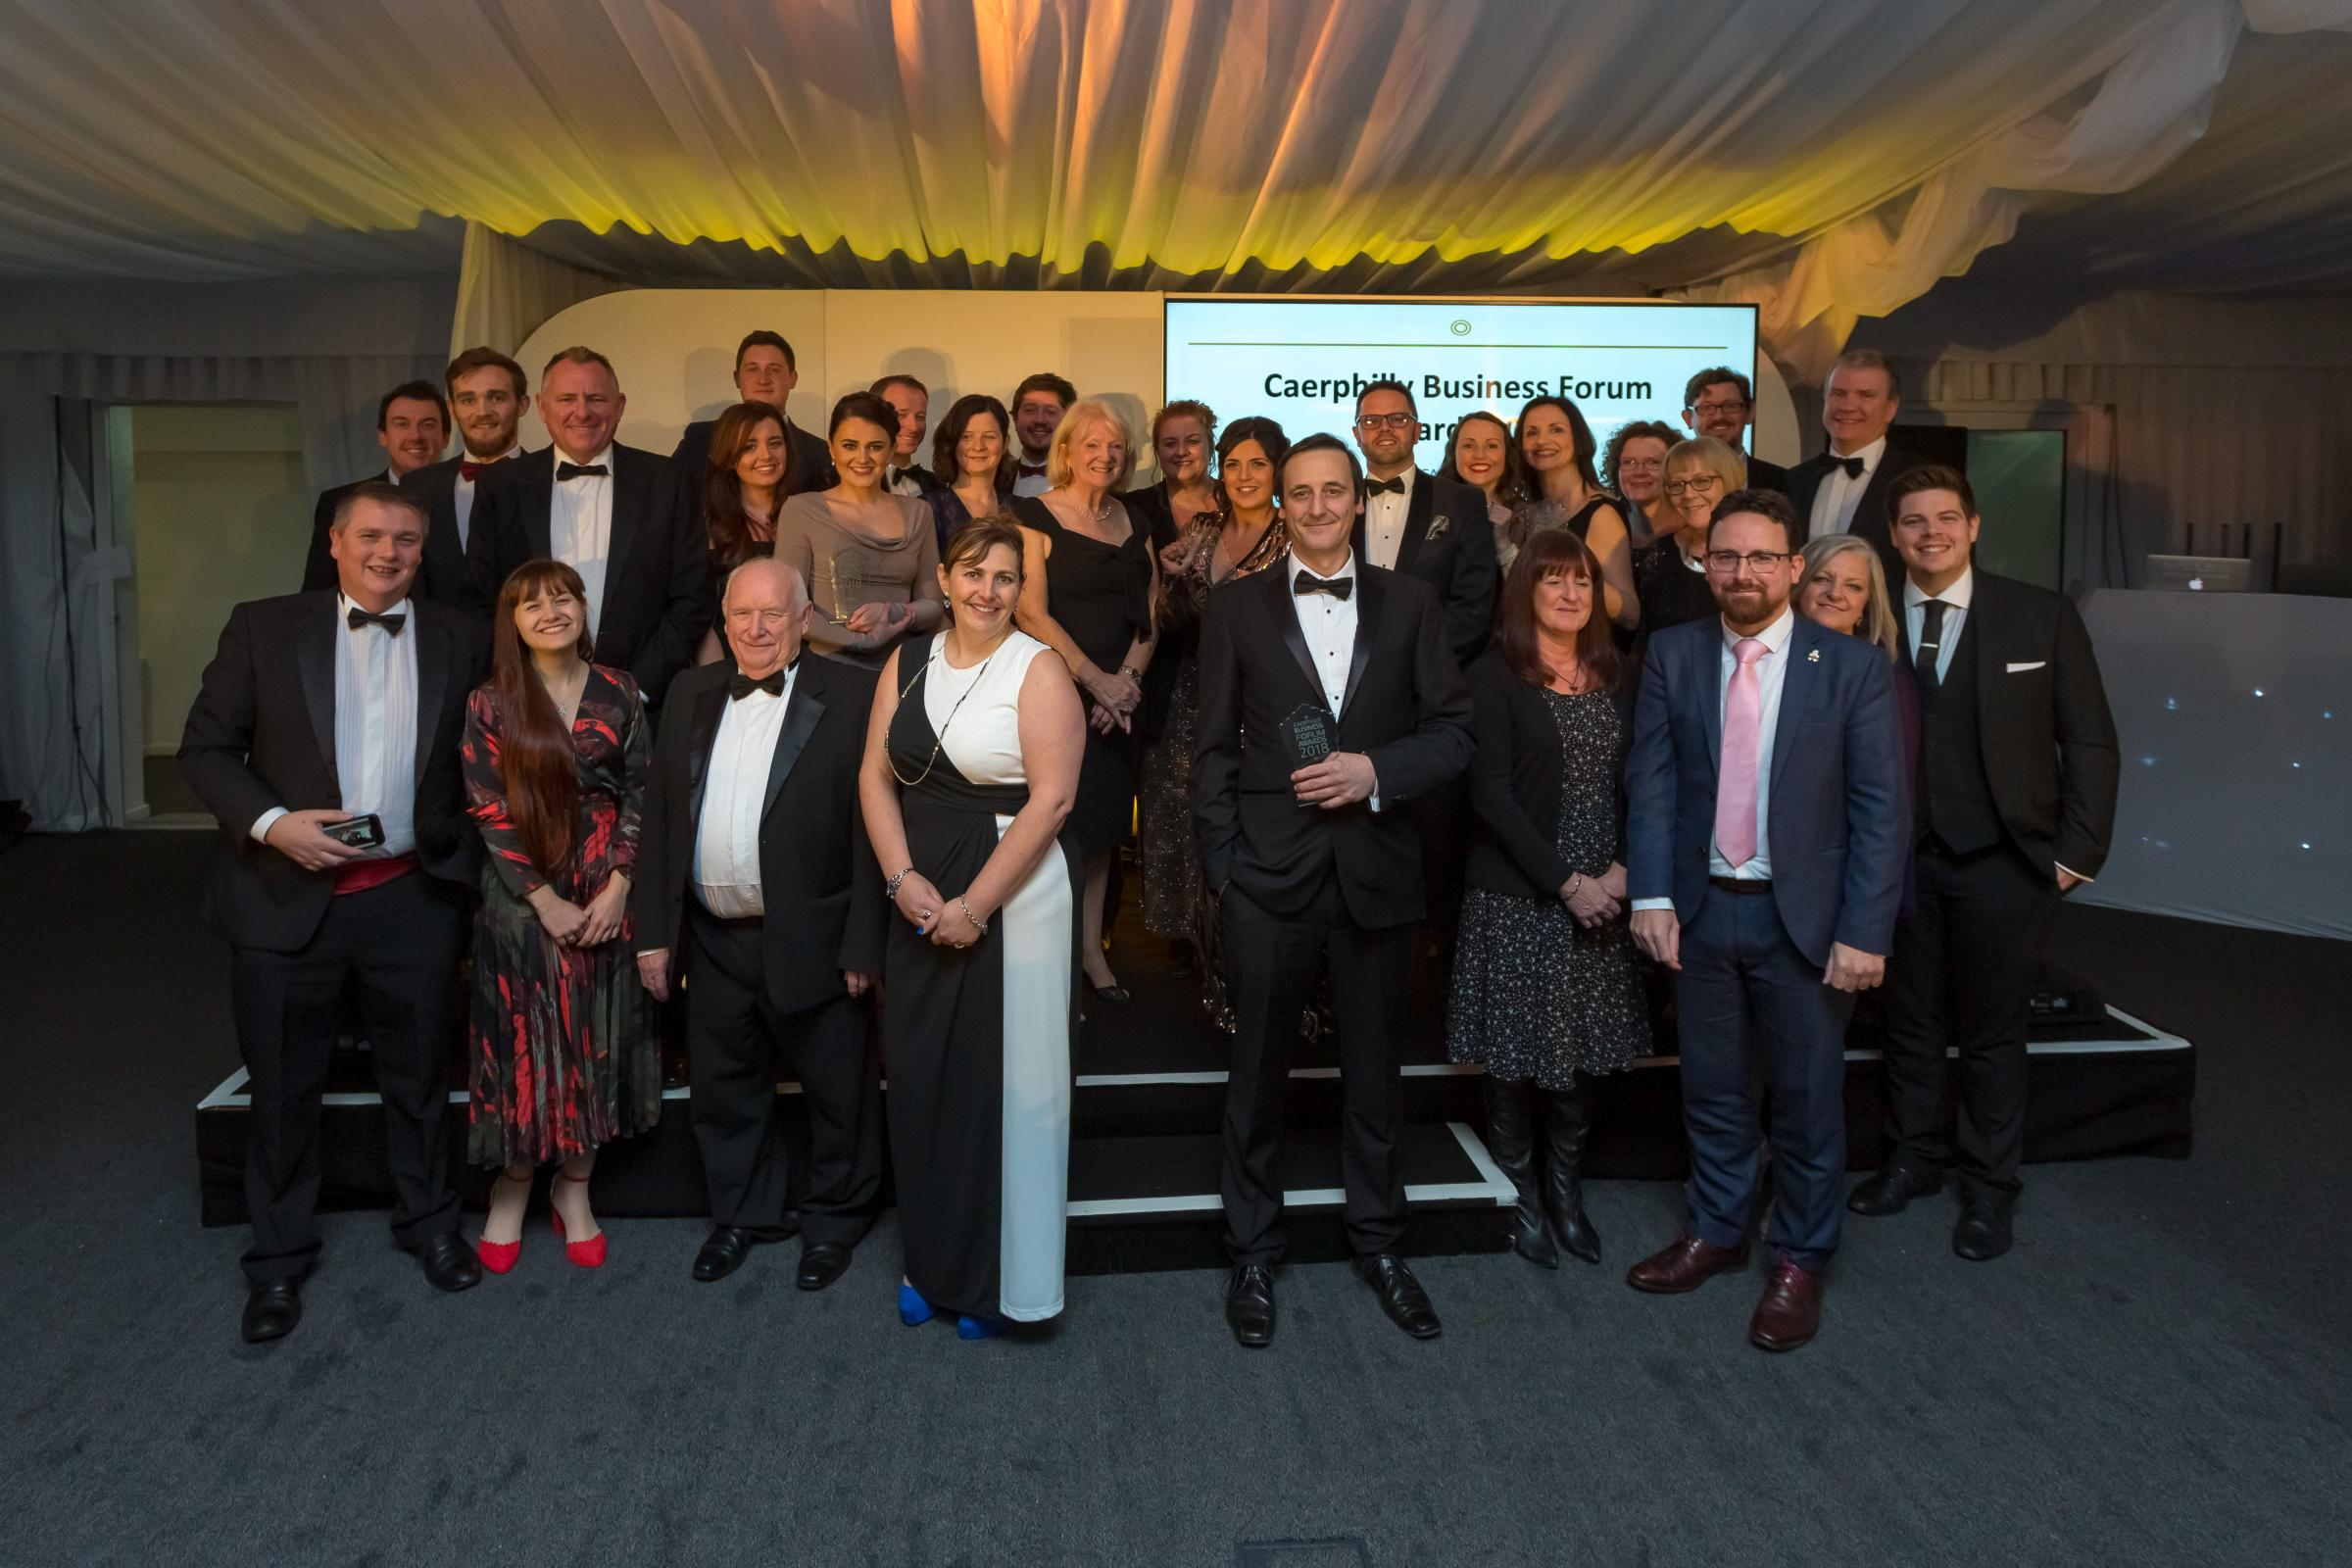 Caerphilly Business Forum award winners